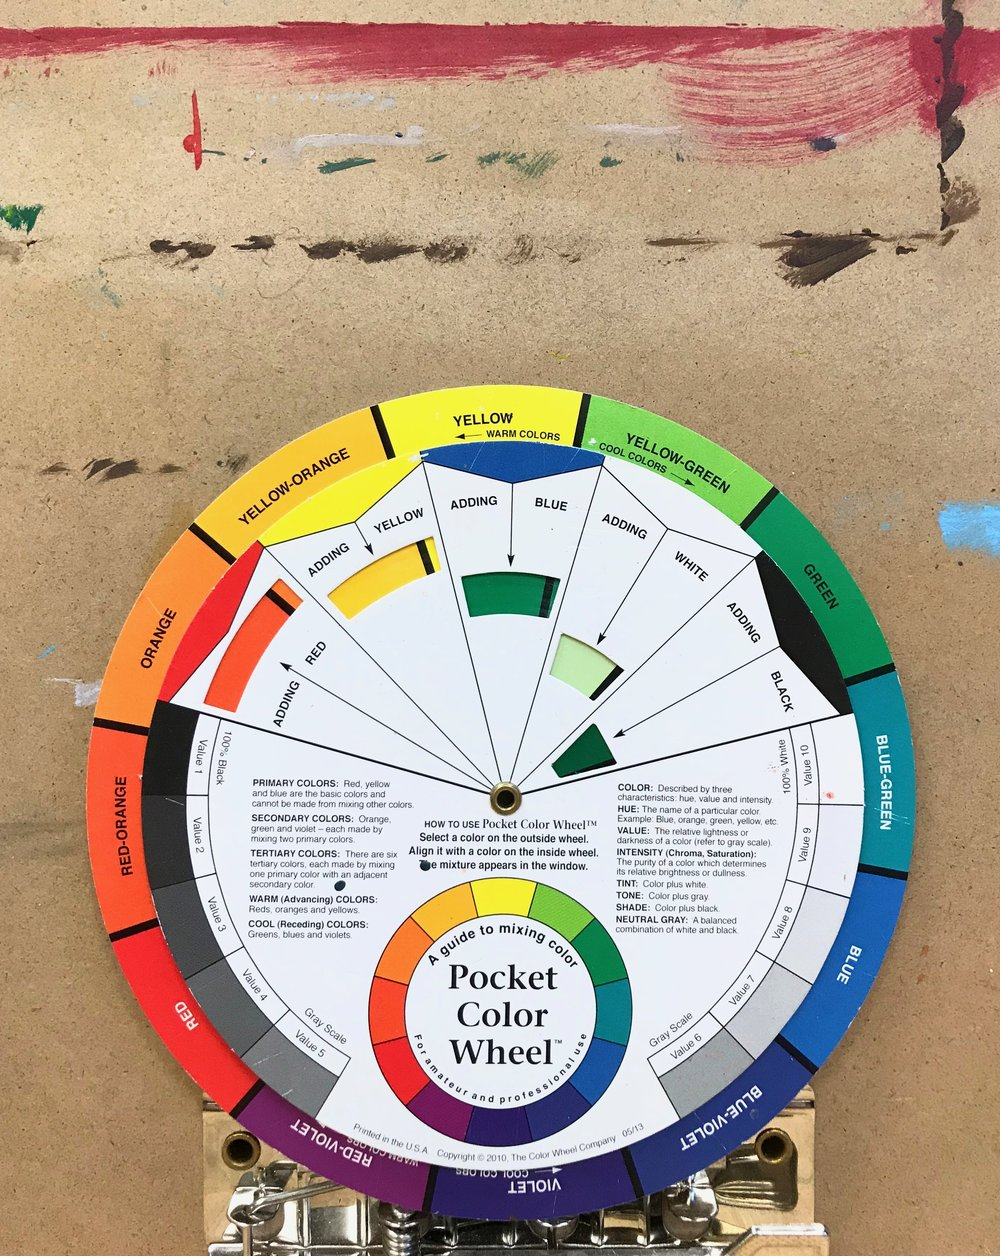 Get Creative This Weekend With Guide For Mixing Acrylic Paints Art Work Place